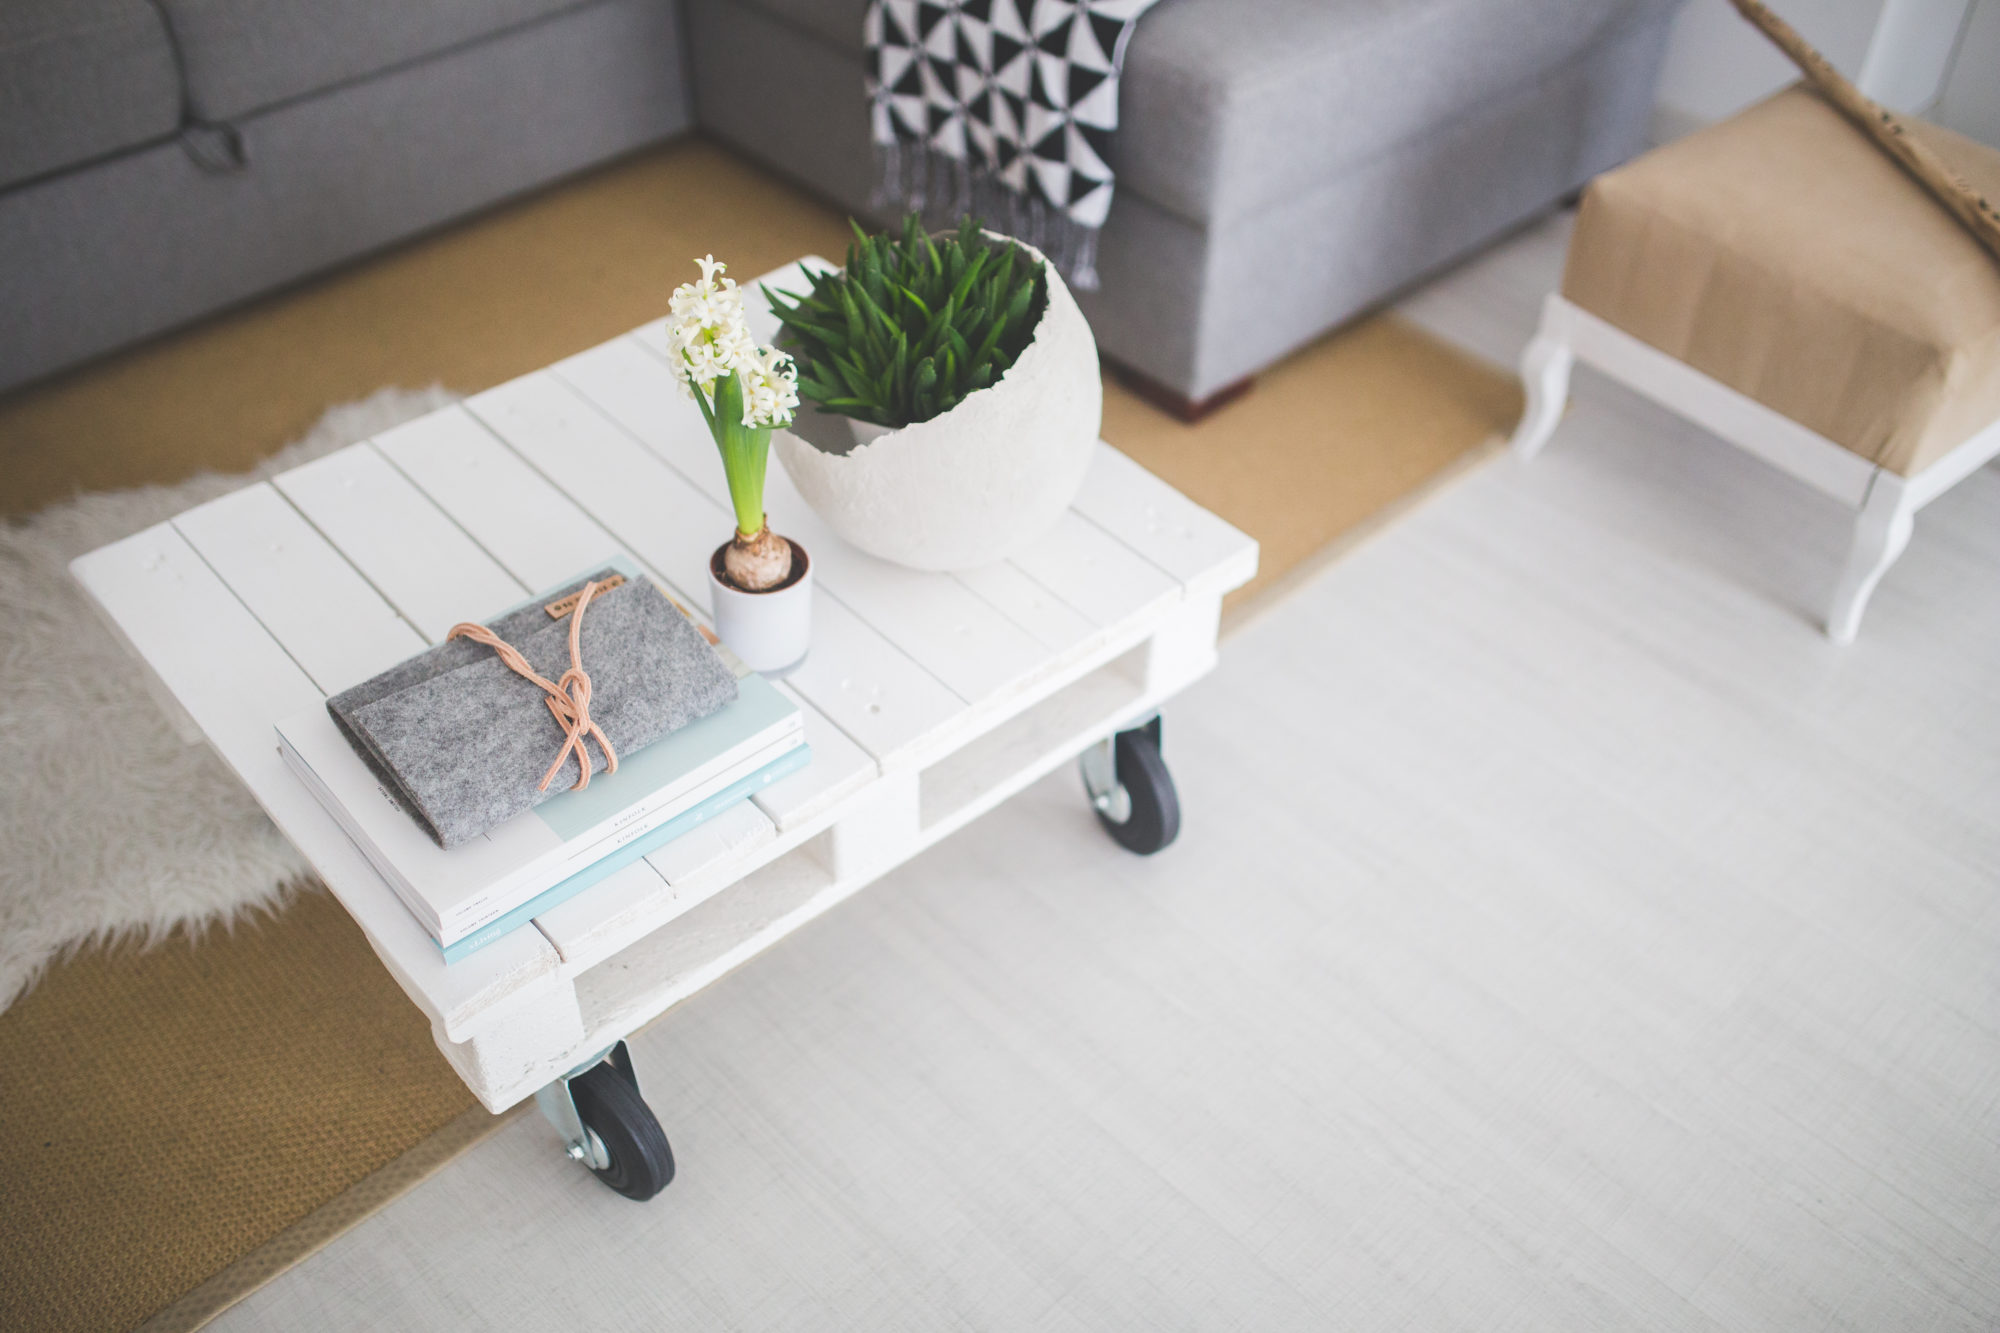 table-white-home-interior-e1517953593747.jpg